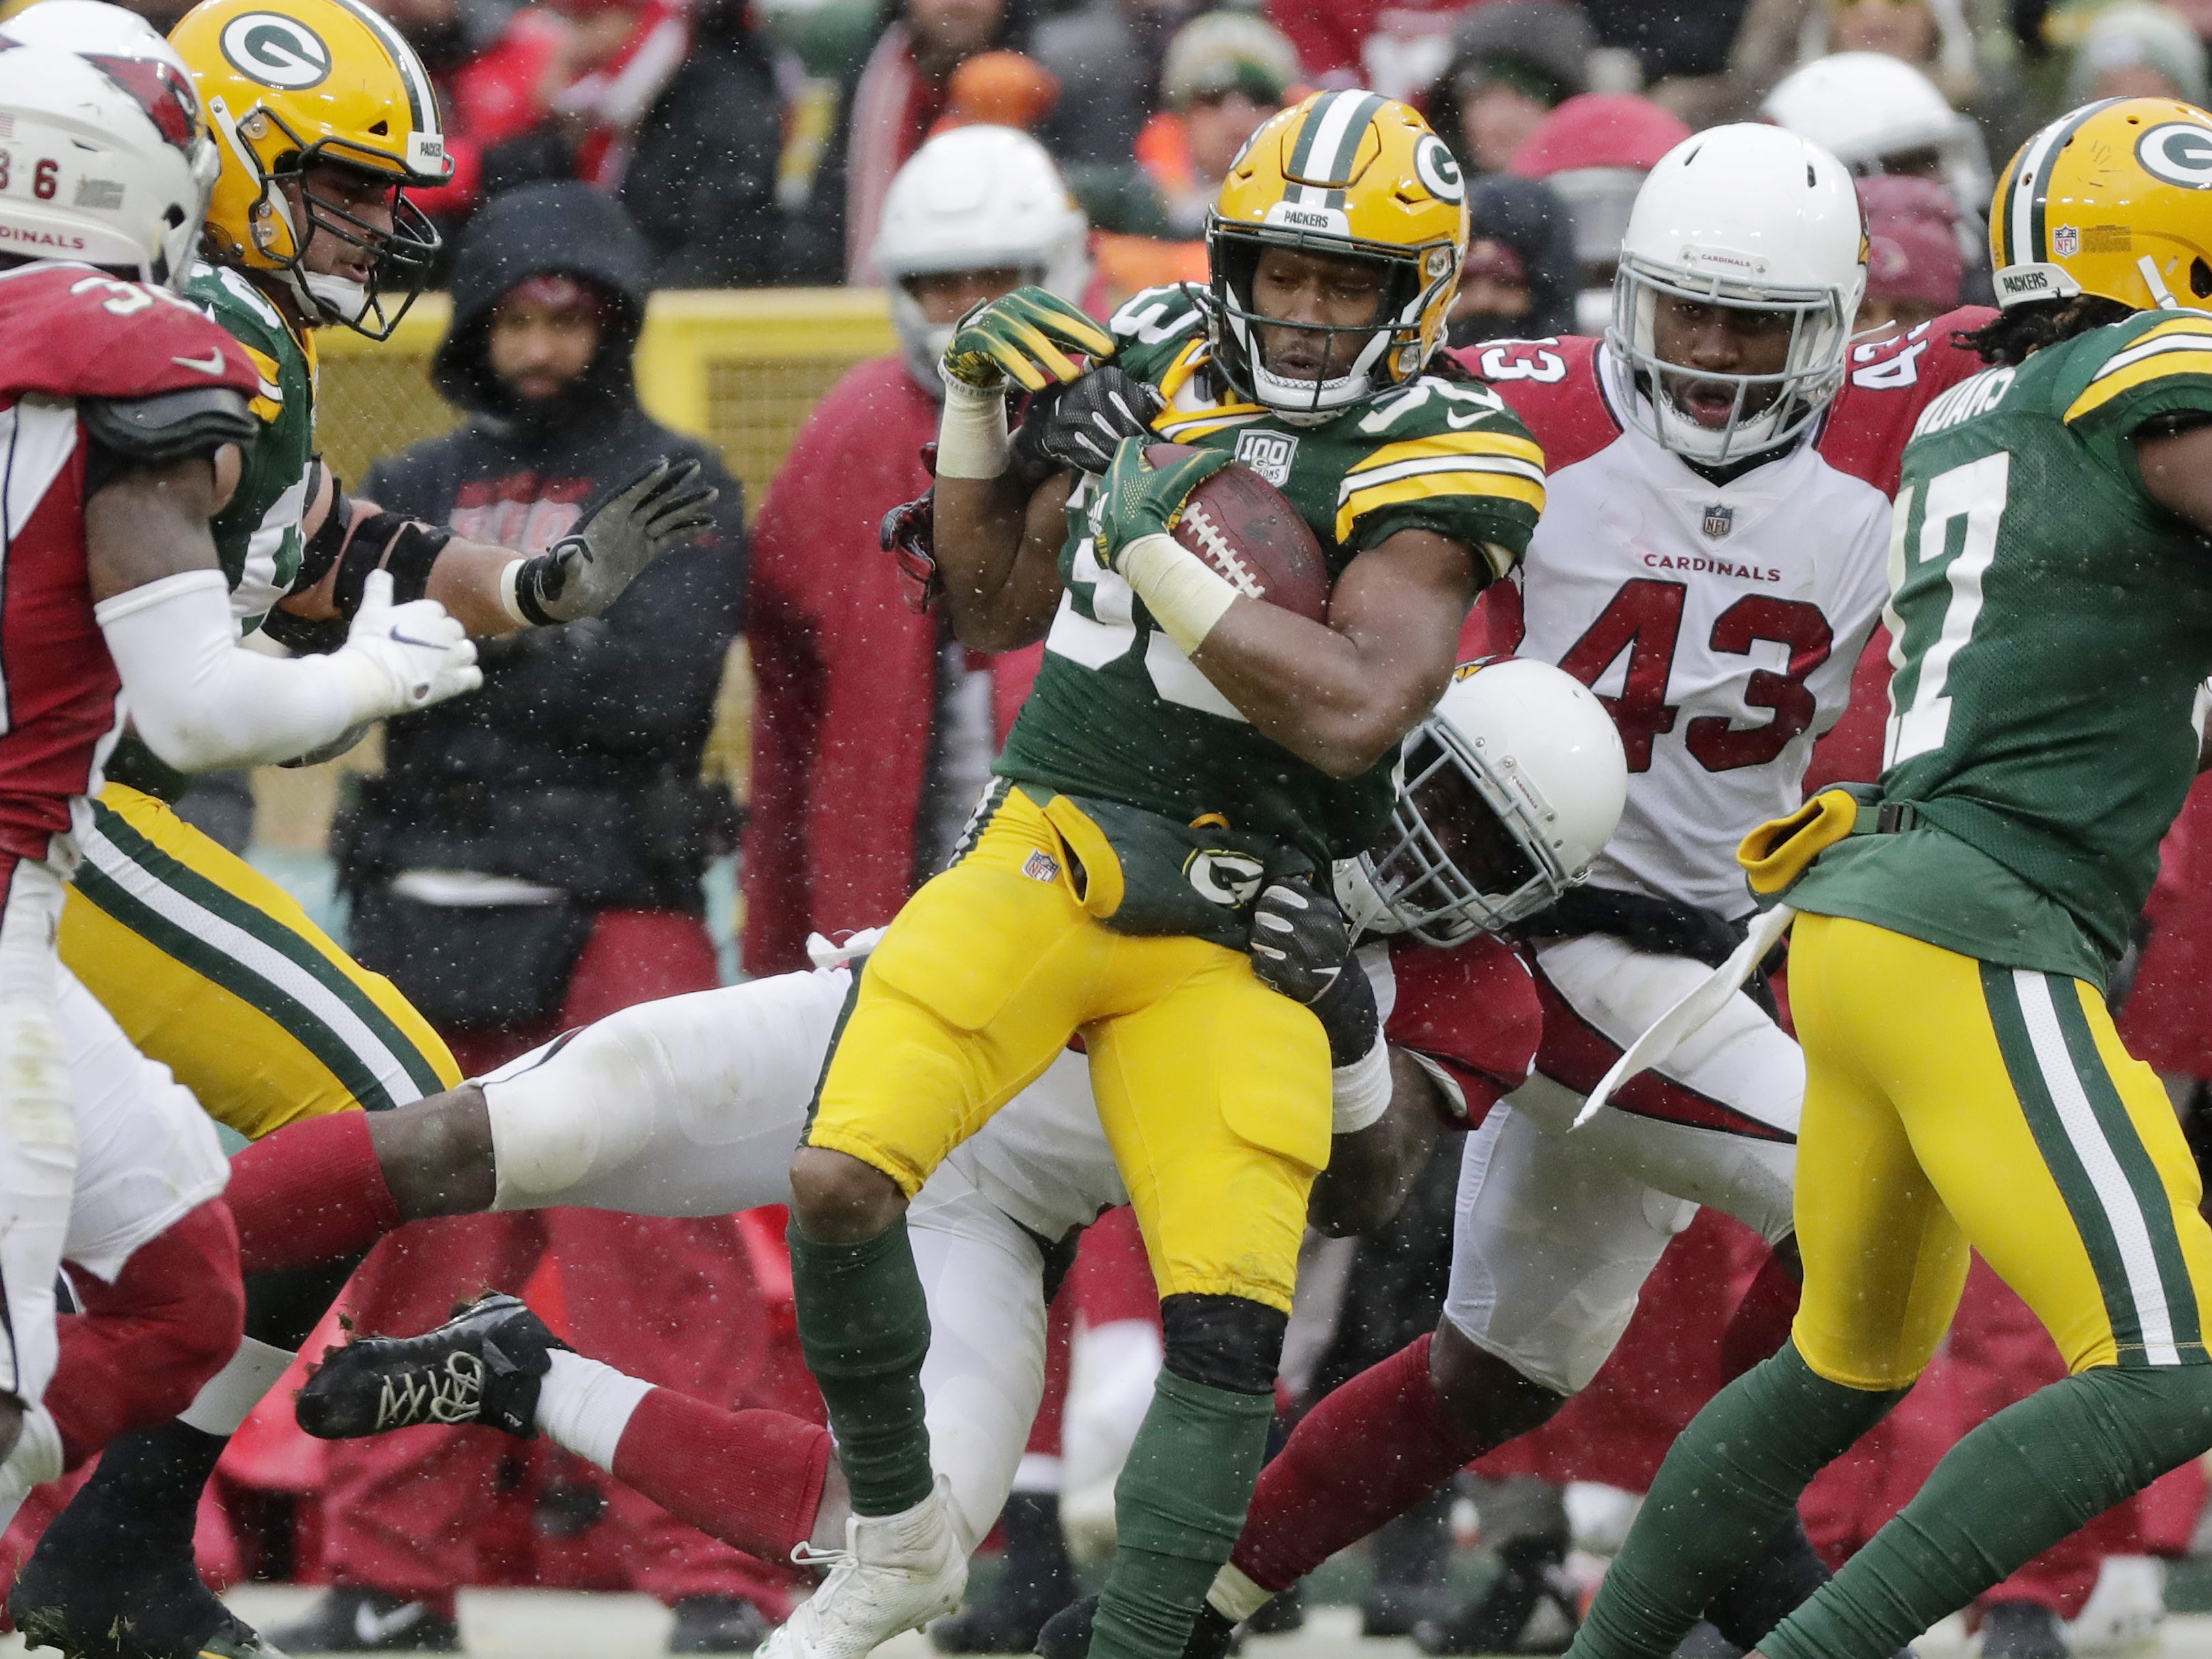 Green Bay Packers running back Aaron Jones (33) runs after a catch against the Arizona Cardinals in the third quarter at Lambeau Field on Sunday, December 2, 2018 in Green Bay, Wis.